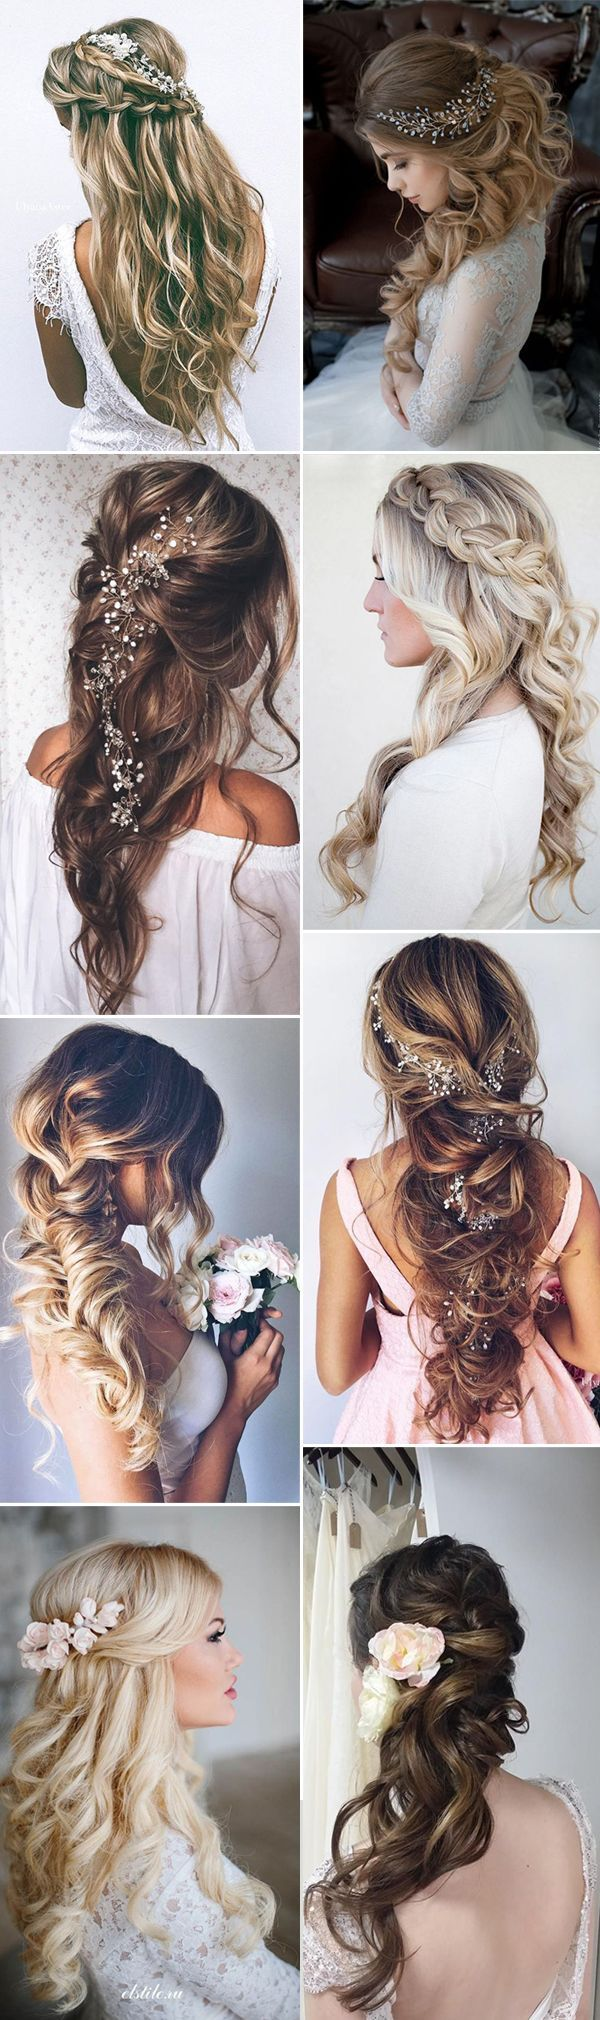 Hello, Brides! It's wedding season now! If you're looking for a timeless wedding hair style then nothing less than a classic updo will suffice. An updo and a floor-length bridal gown are a traditional duo that brings ...